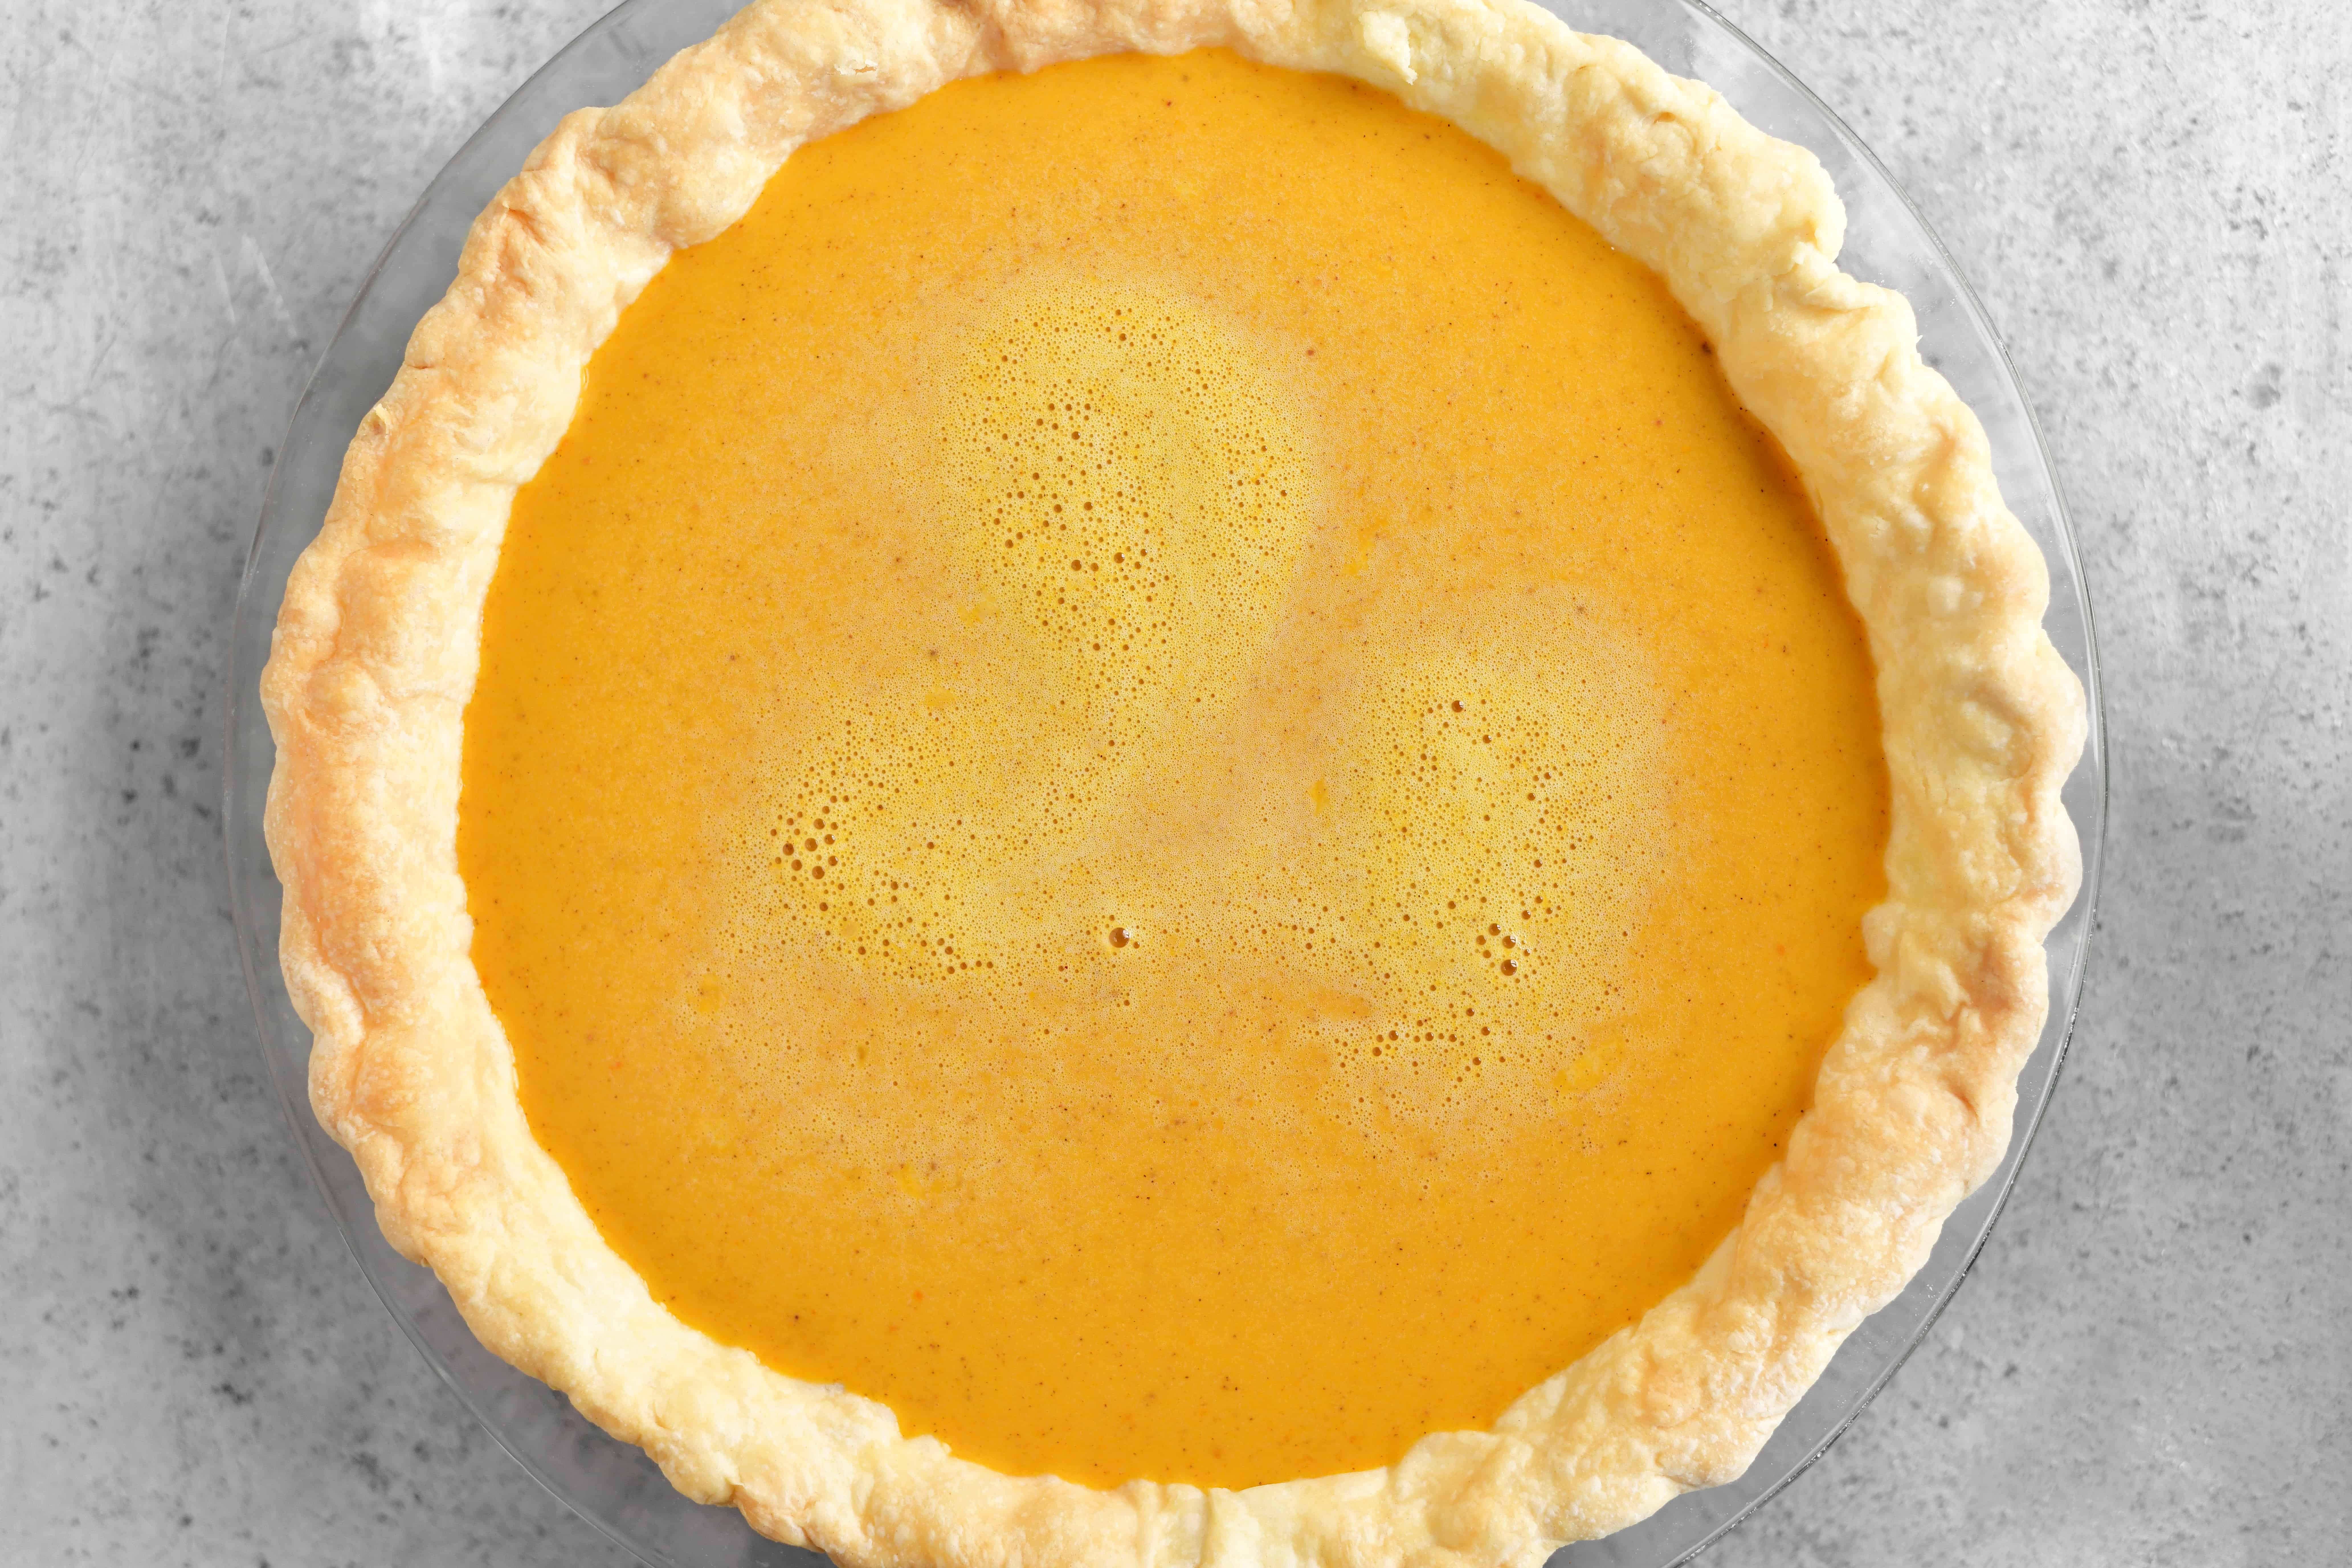 adding the filling to the pie crust